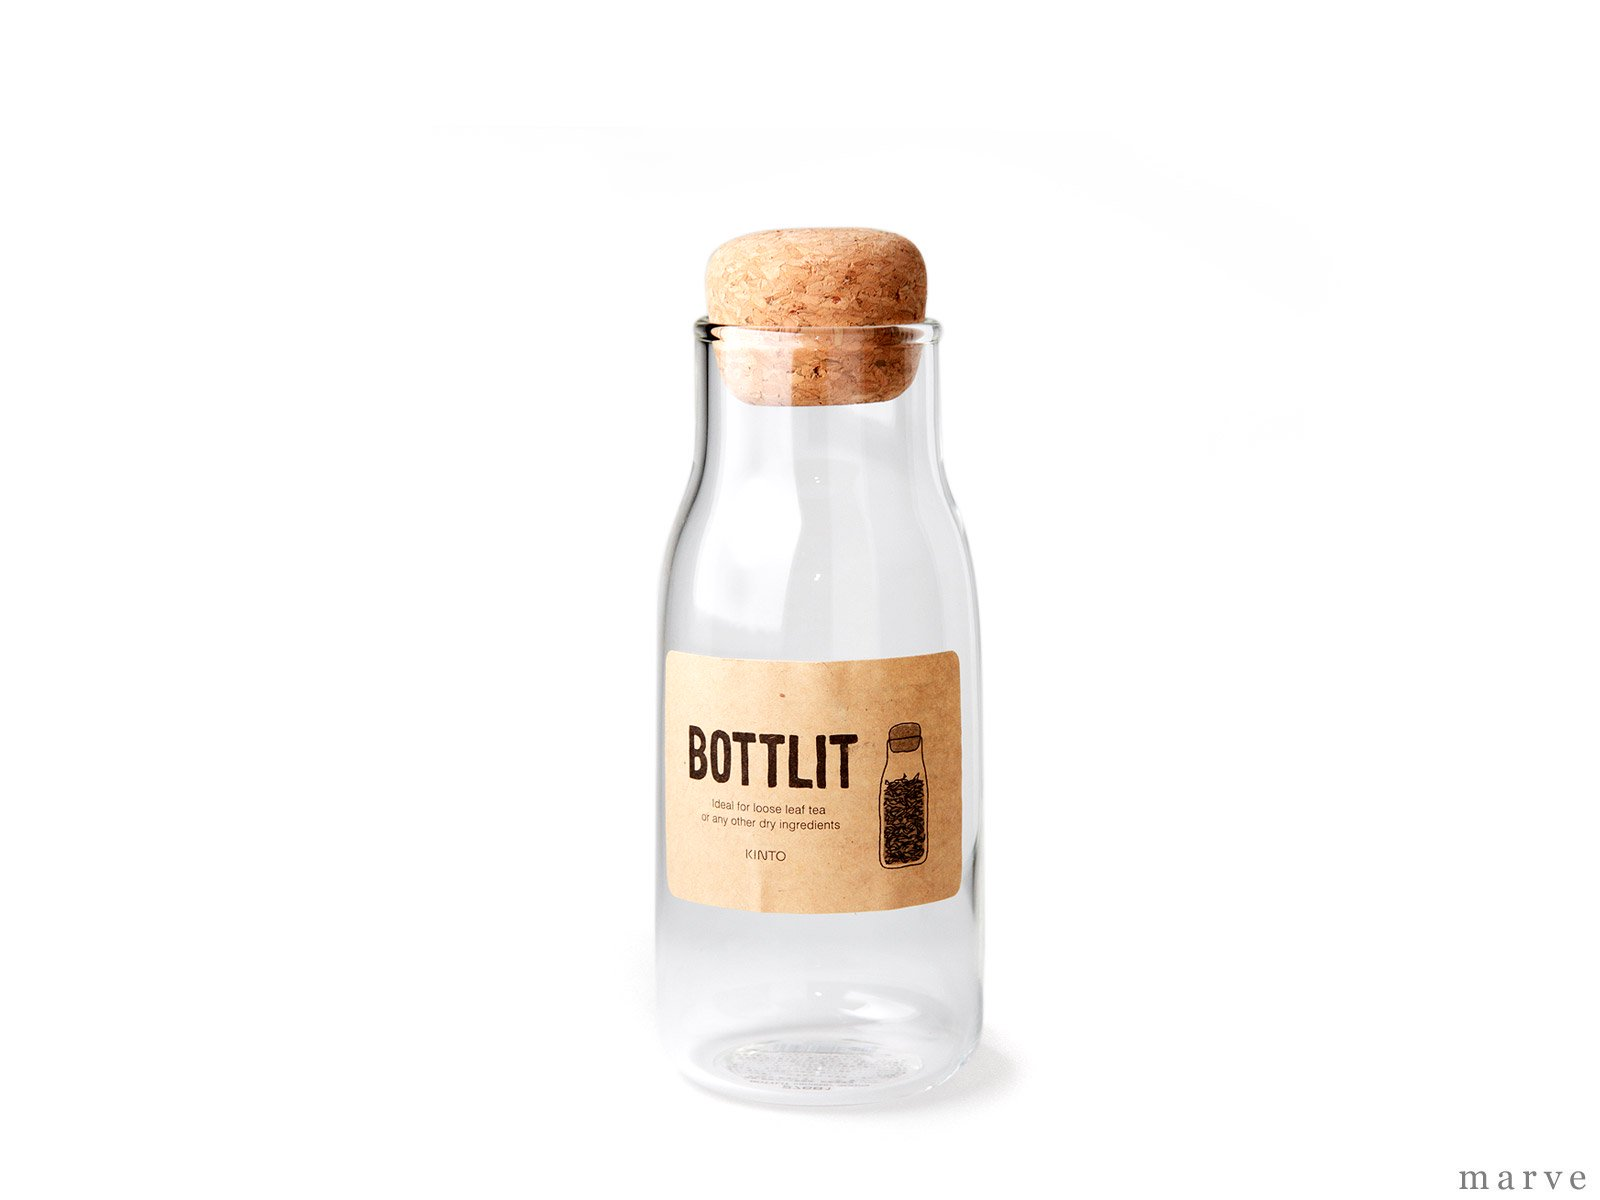 【OUTLET】BOTTLIT(ボトリット) ガラスキャニスター 300ml<img class='new_mark_img2' src='https://img.shop-pro.jp/img/new/icons16.gif' style='border:none;display:inline;margin:0px;padding:0px;width:auto;' />